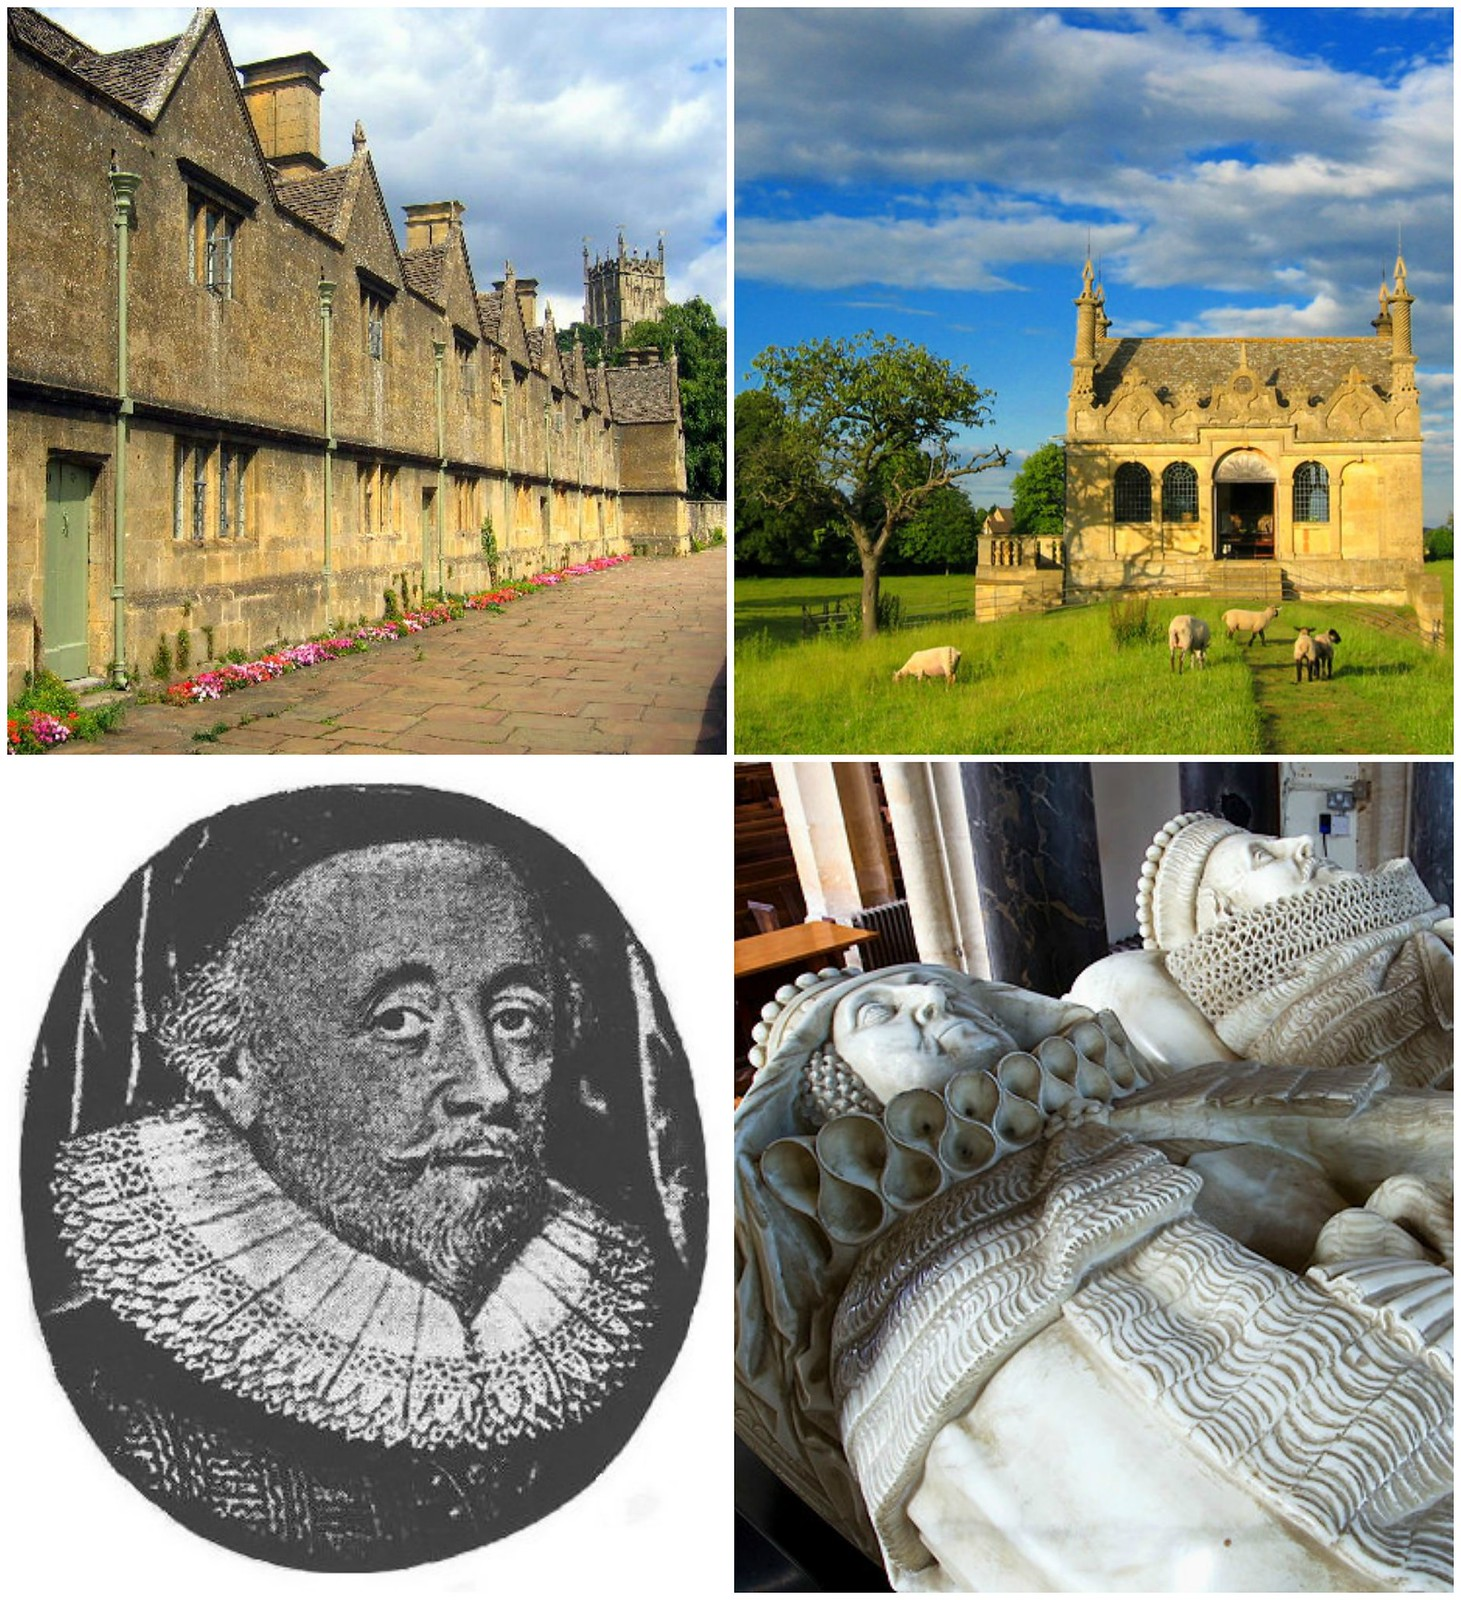 Clockwise from top left: Almshouses donated to some of the village's poor folk by Baptist Hicks, 1st Viscount Campden; the banqueting hall is all that remains of Viscount Hicks's country mansion in Chipping Campden; Viscount Hicks; Viscount Hicks and his wife at rest in St James's church, Chipping Campden